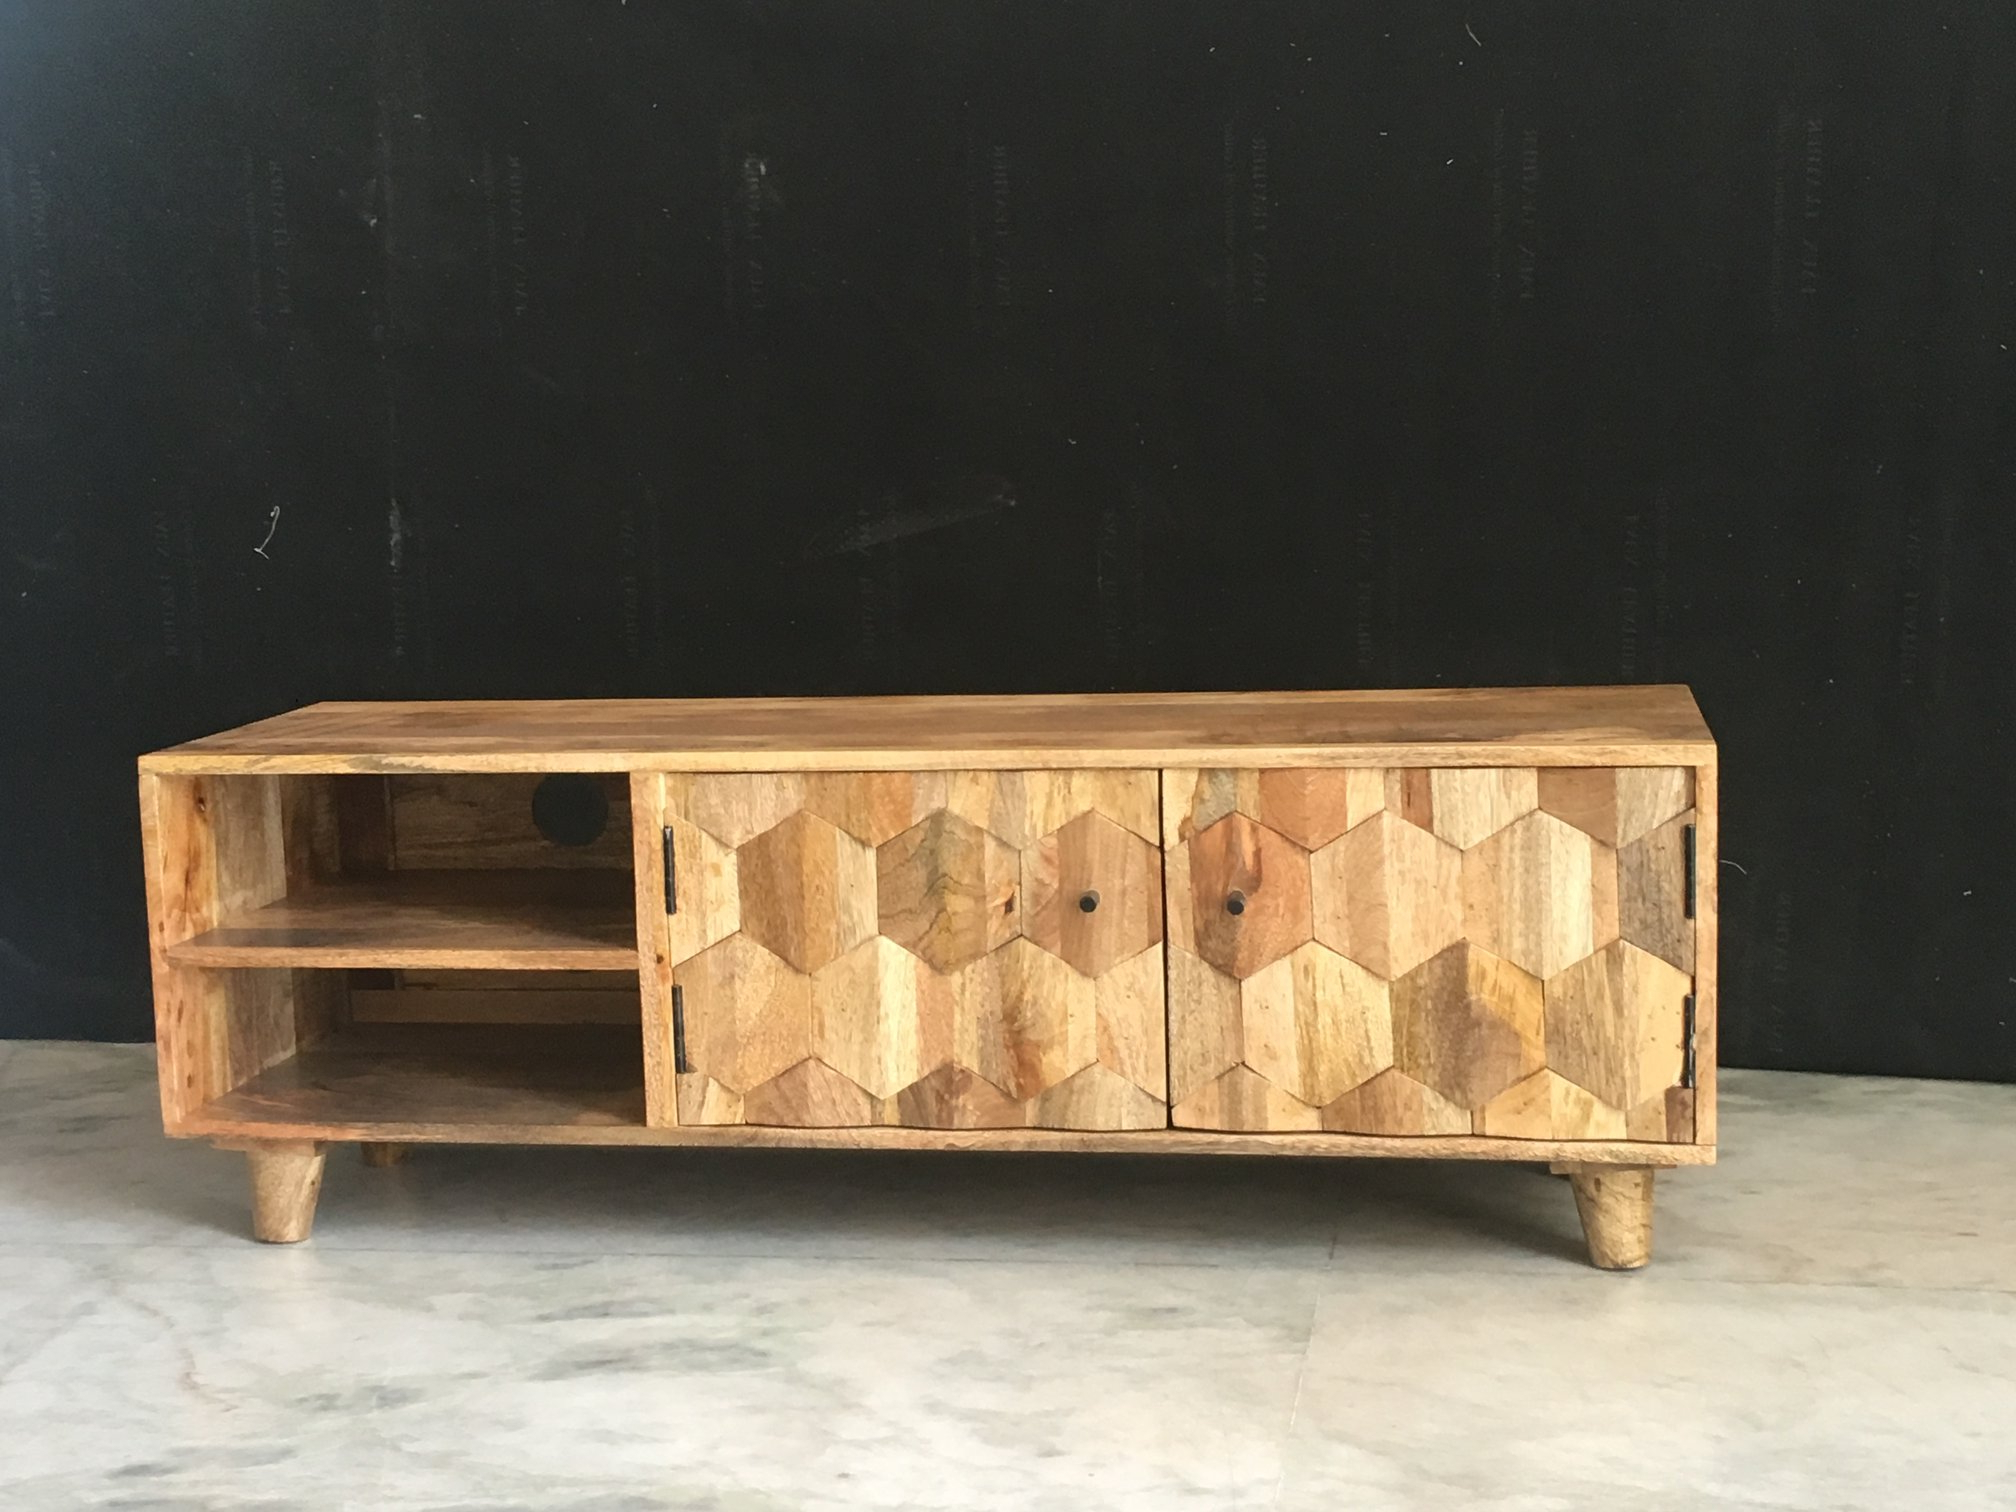 Light Mango Wood Tv Stand / Media Unit With Hexagonal Patterns In Widely Used Mango Wood Tv Cabinets (Gallery 13 of 20)